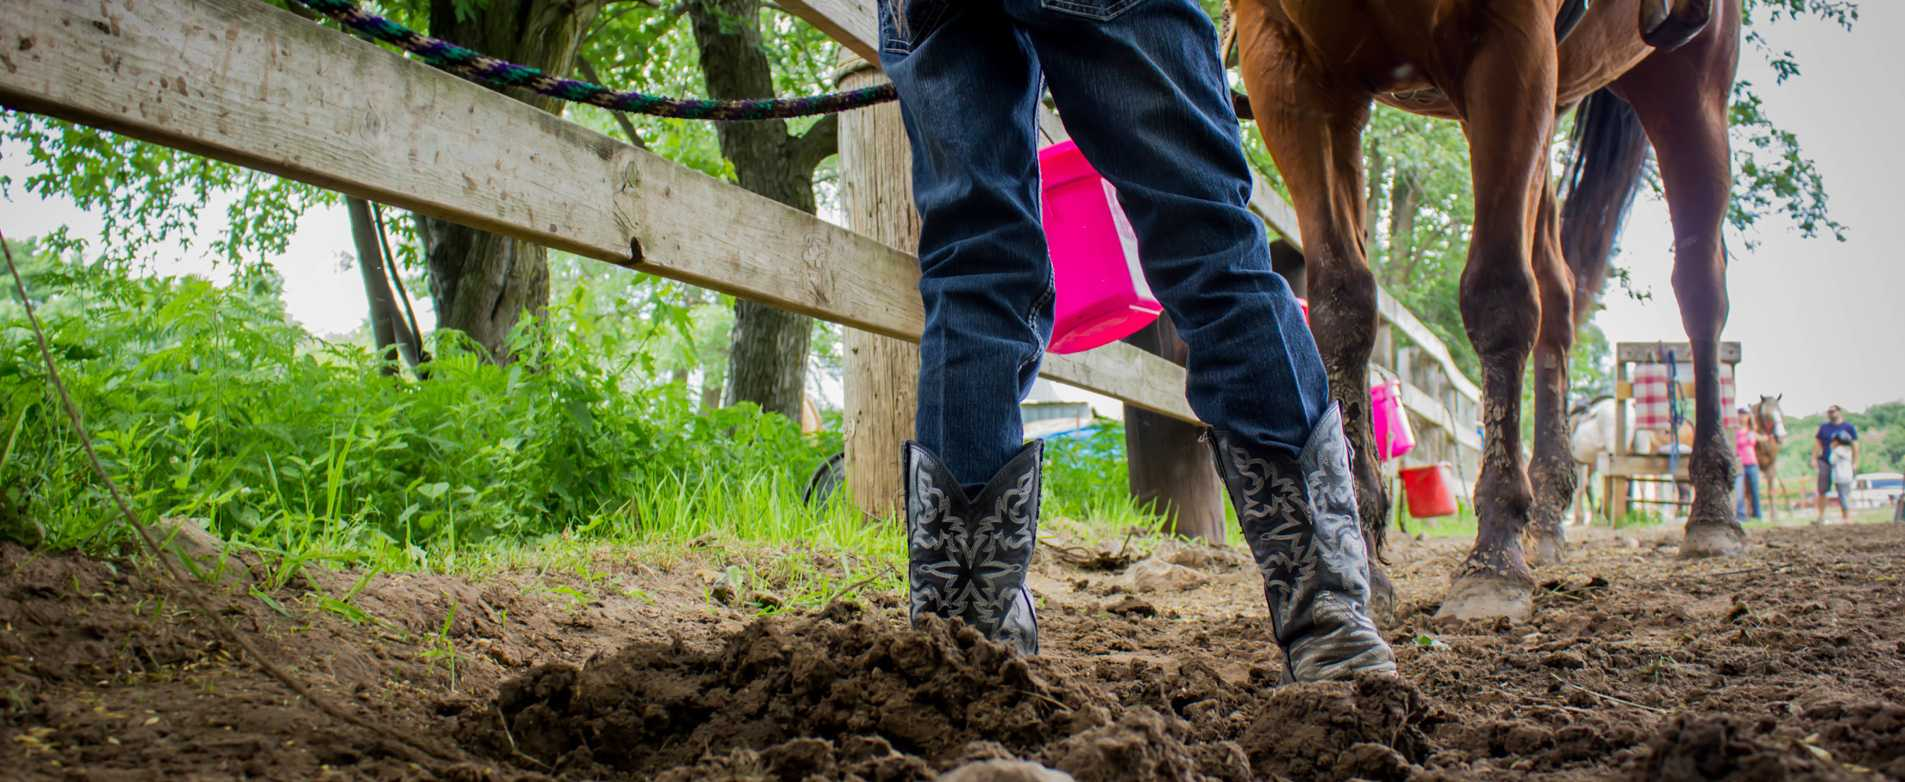 Cowboy-Boots-and-Horse-Outside-at-Ranch